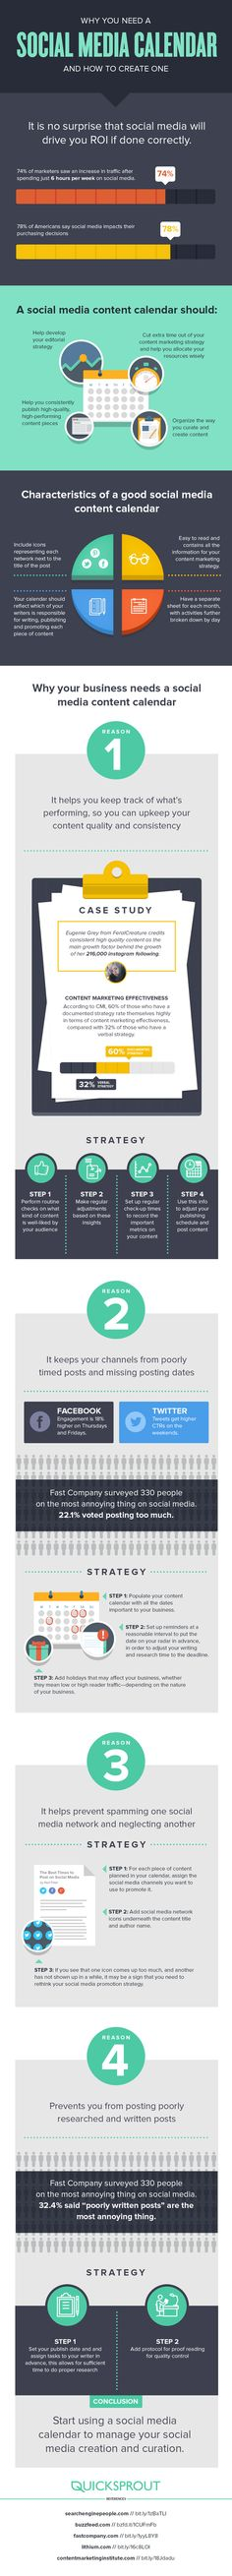 Why You Need a Social Media Calender And How To Create One #infographic #SocialMedia #SocialMediaCalender